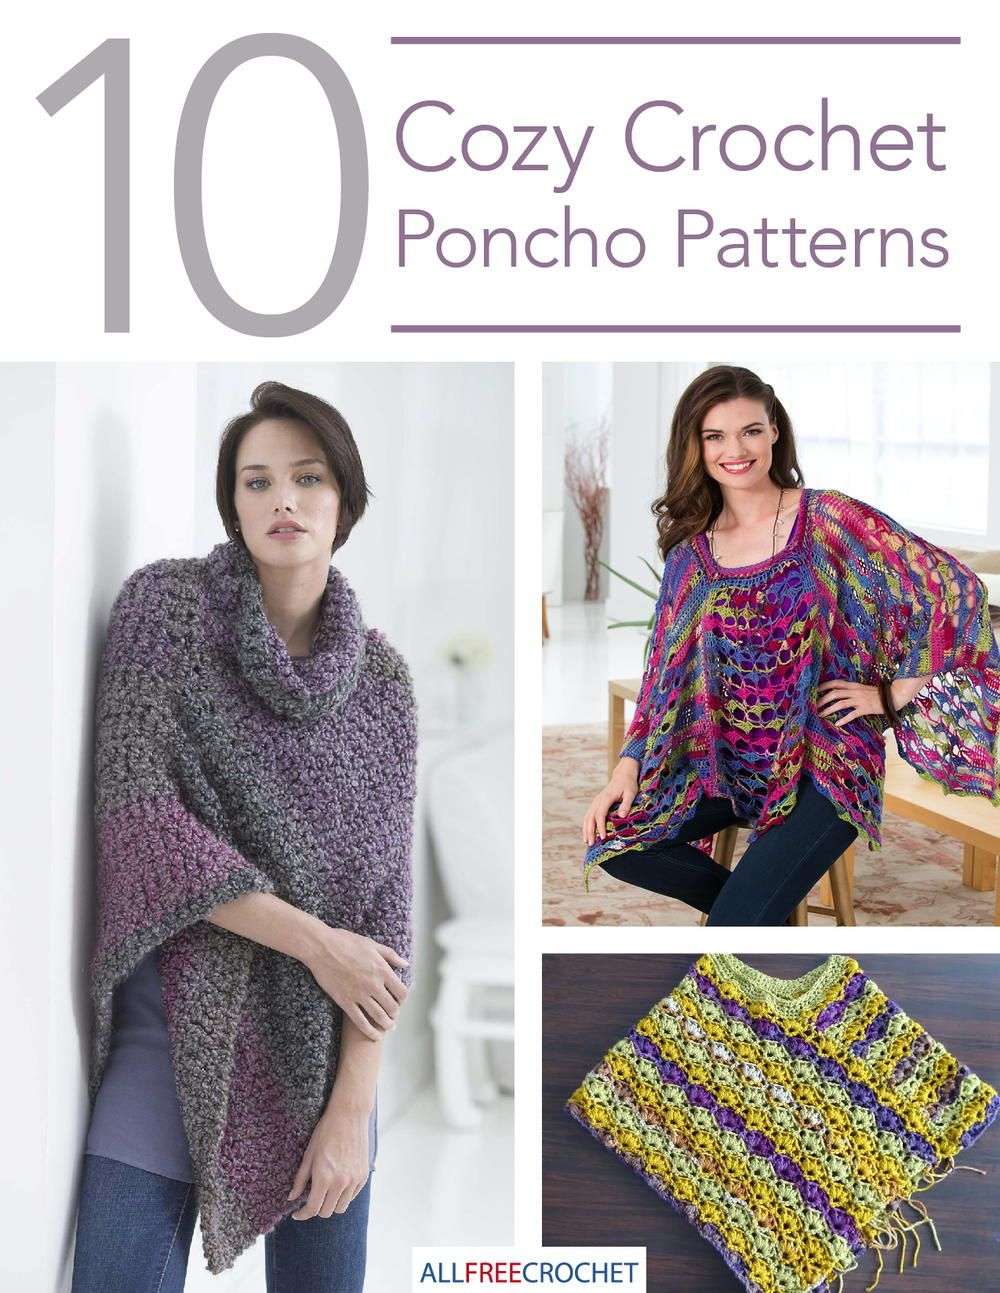 10 Cozy Crochet Poncho Patterns | Pinterest | Chaqueta de ganchillo ...